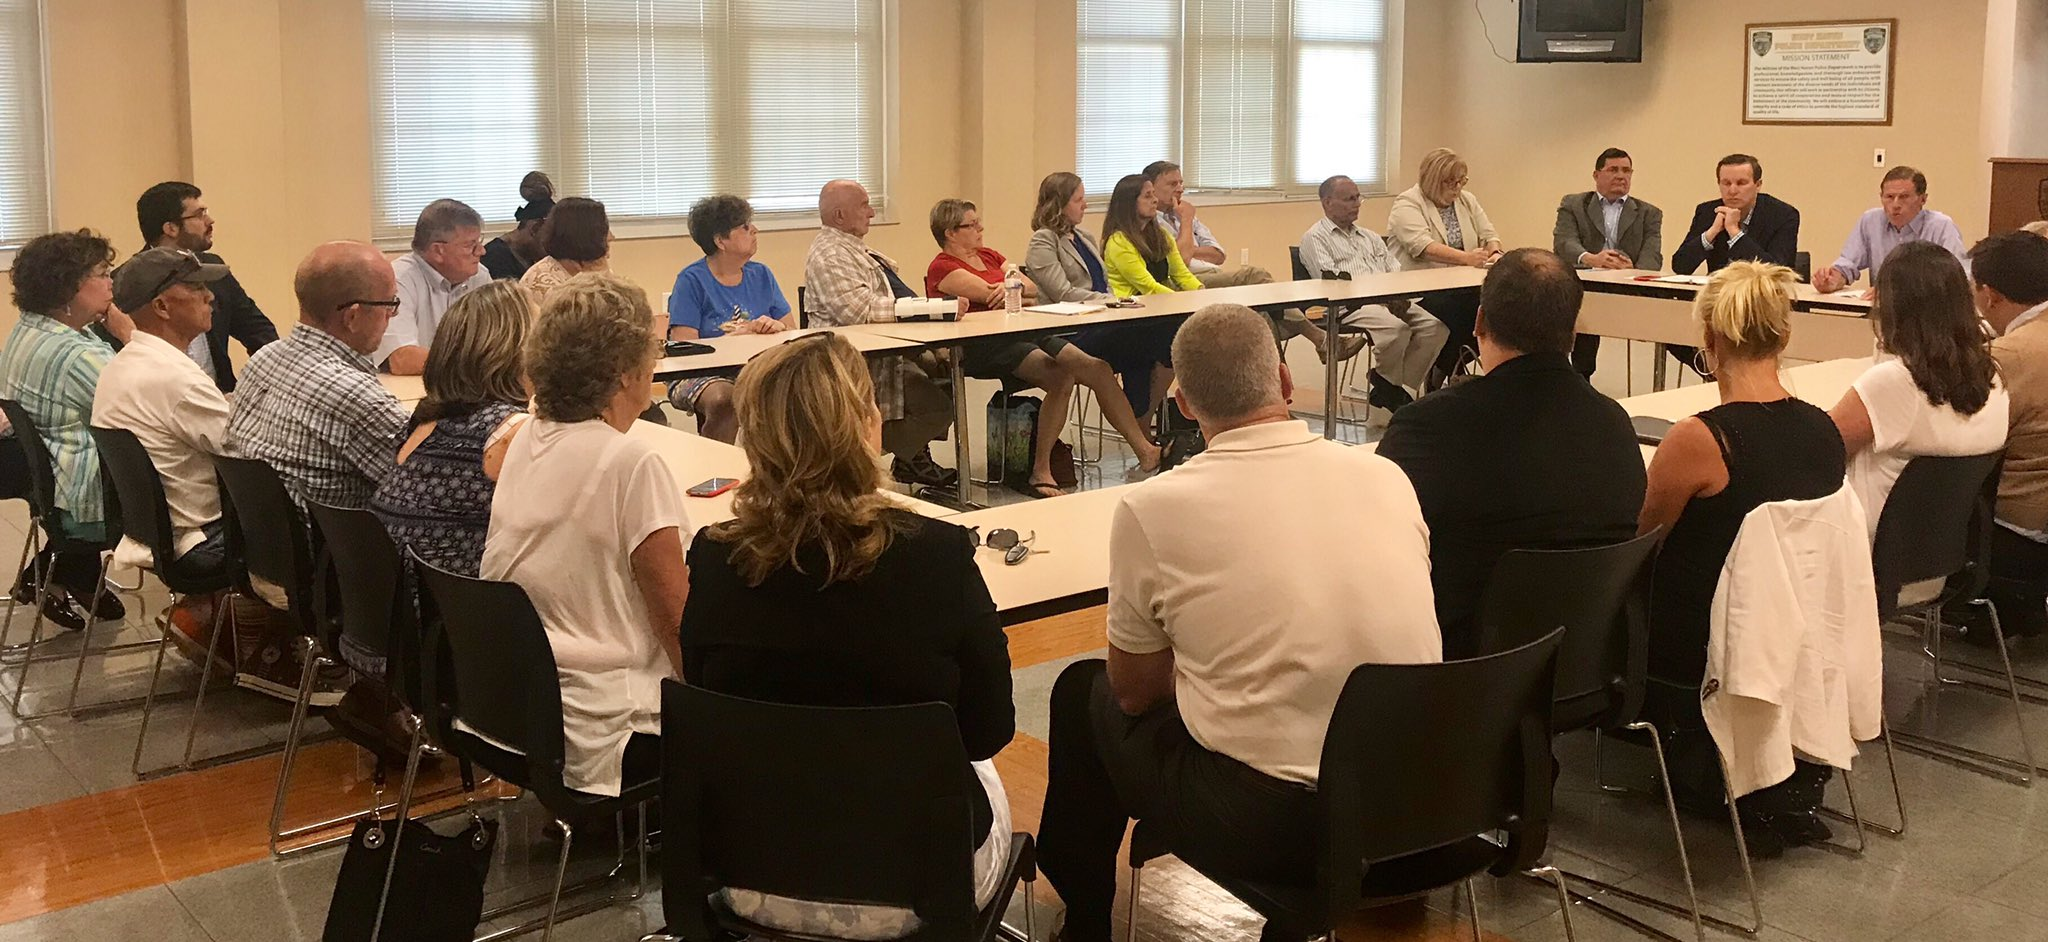 Sat down with mayors, insurance agents, realtors, & resiliency experts in #WestHaven to talk about flood insurance https://t.co/pjySIwbAXq